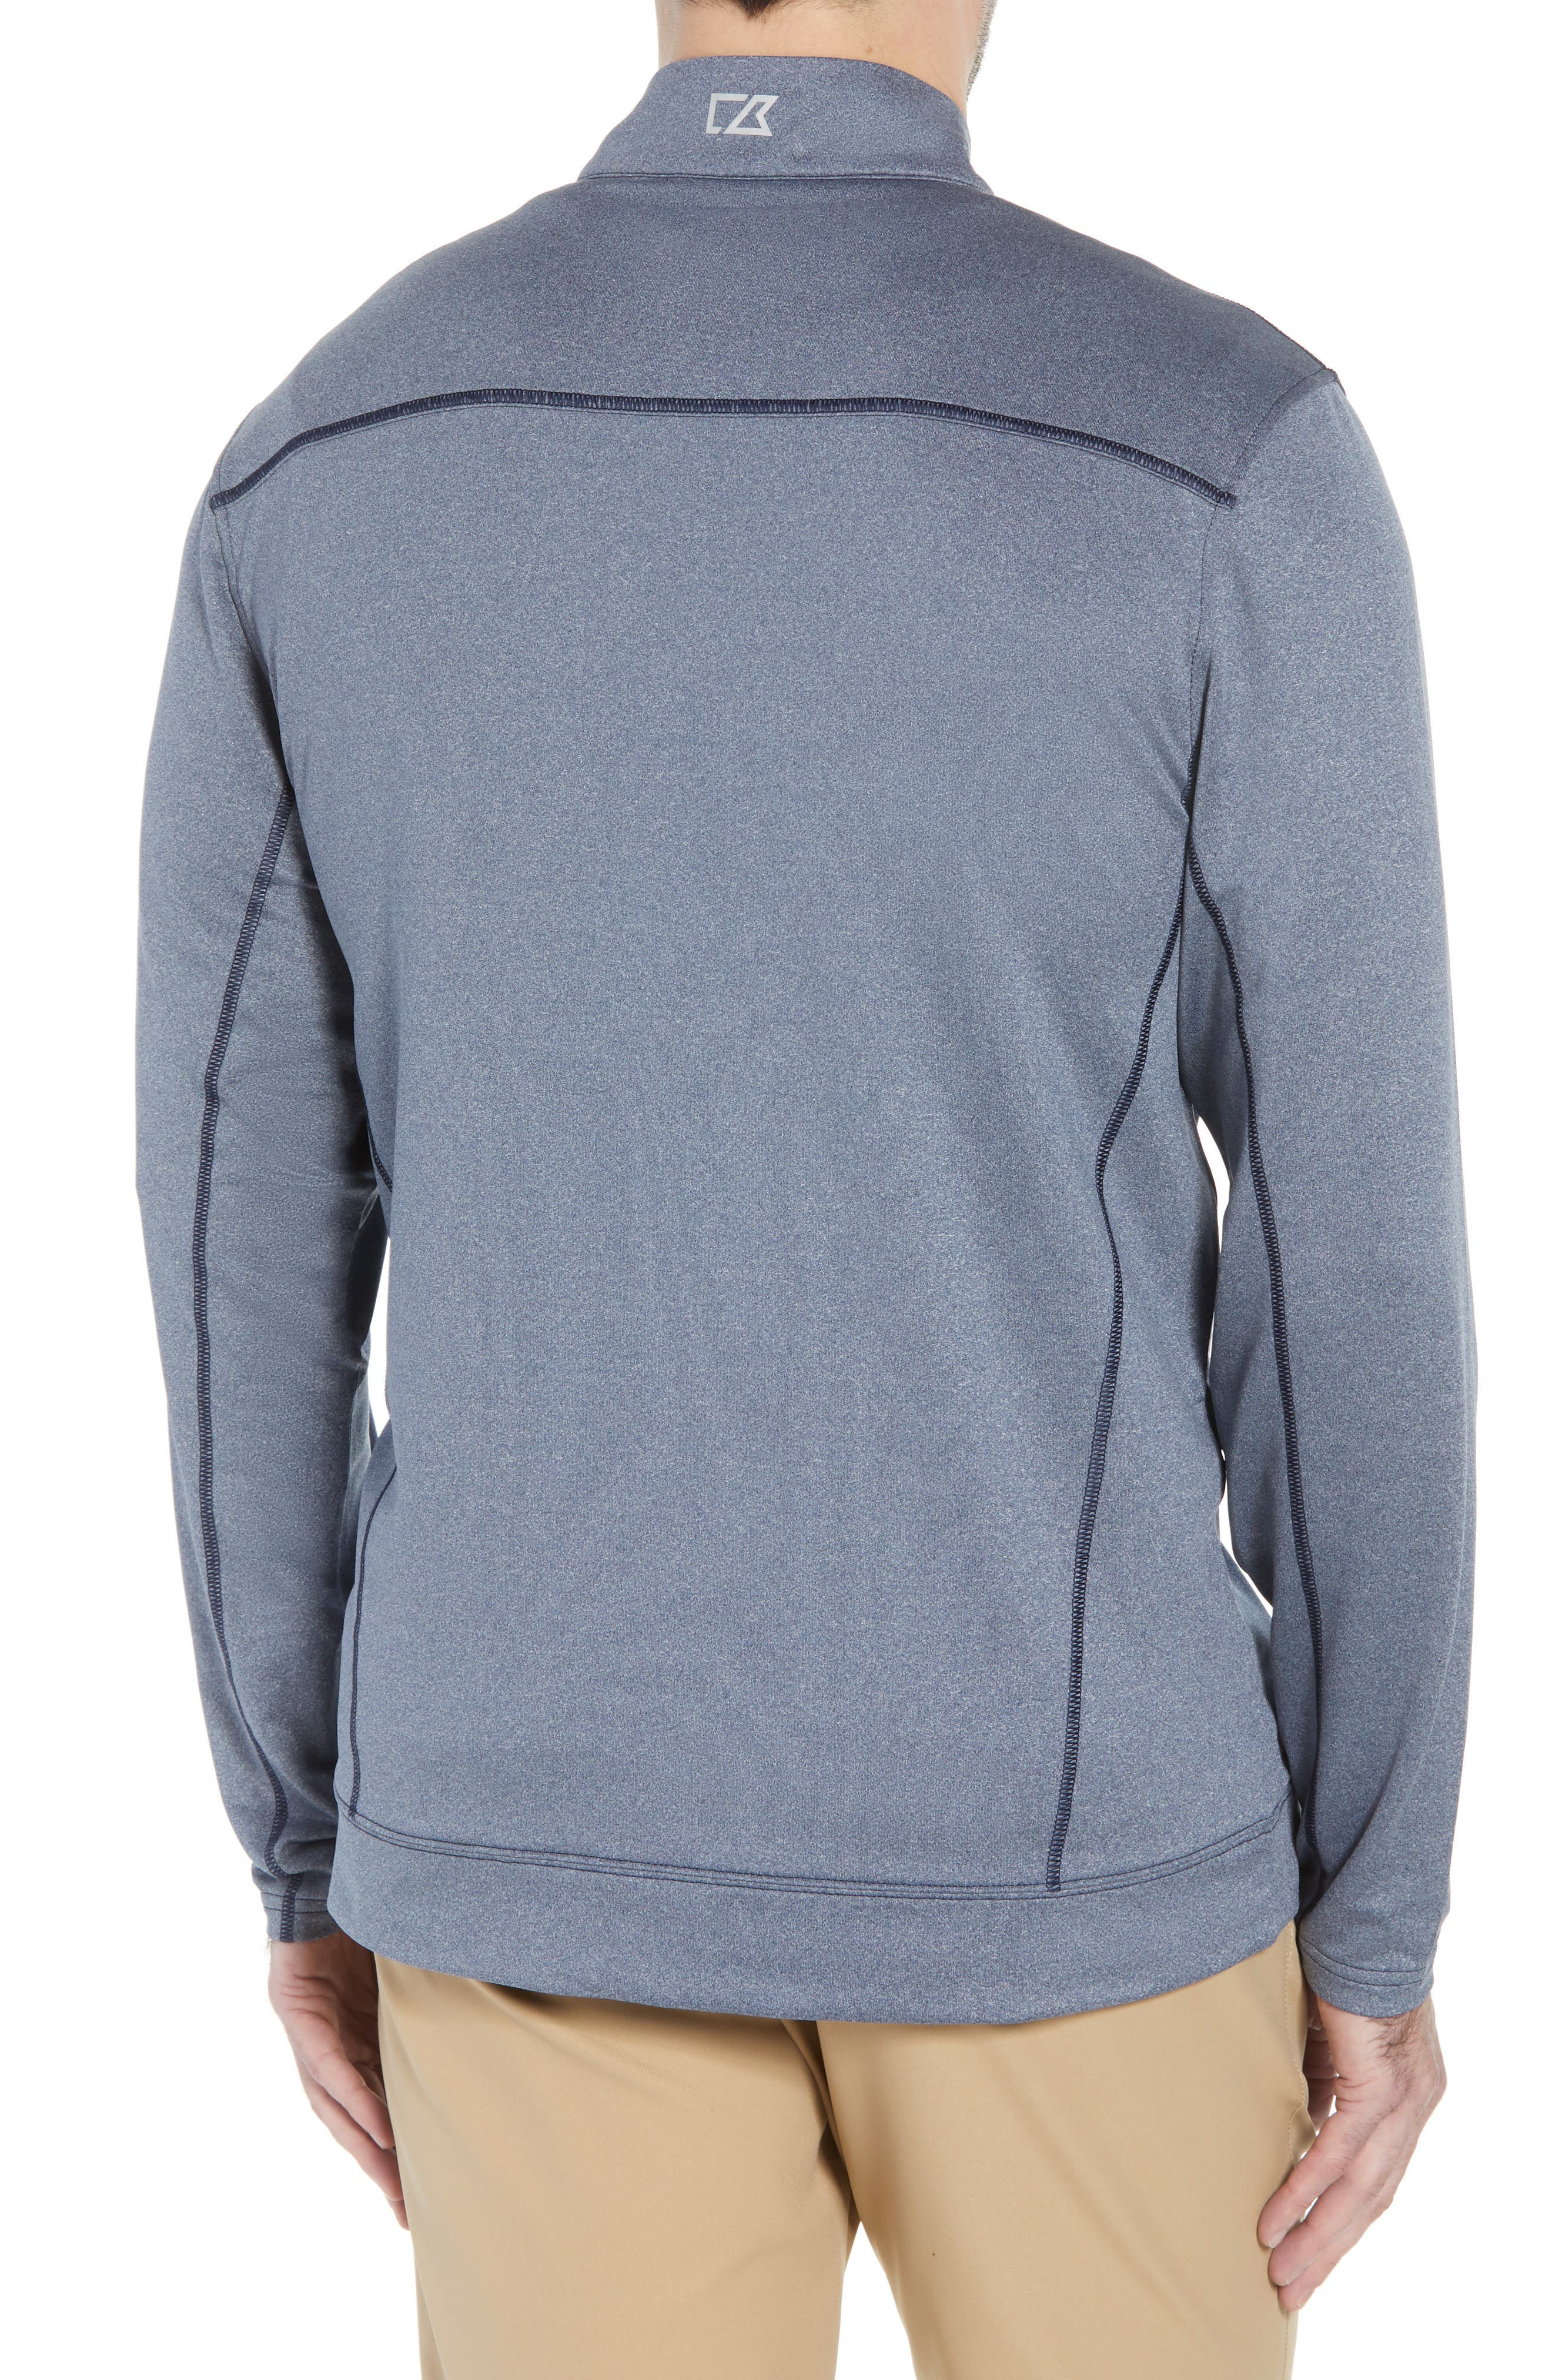 Endurance Los Angeles Chargers Regular Fit Pullover,                             Alternate thumbnail 2, color,                             LIBERTY NAVY HEATHER